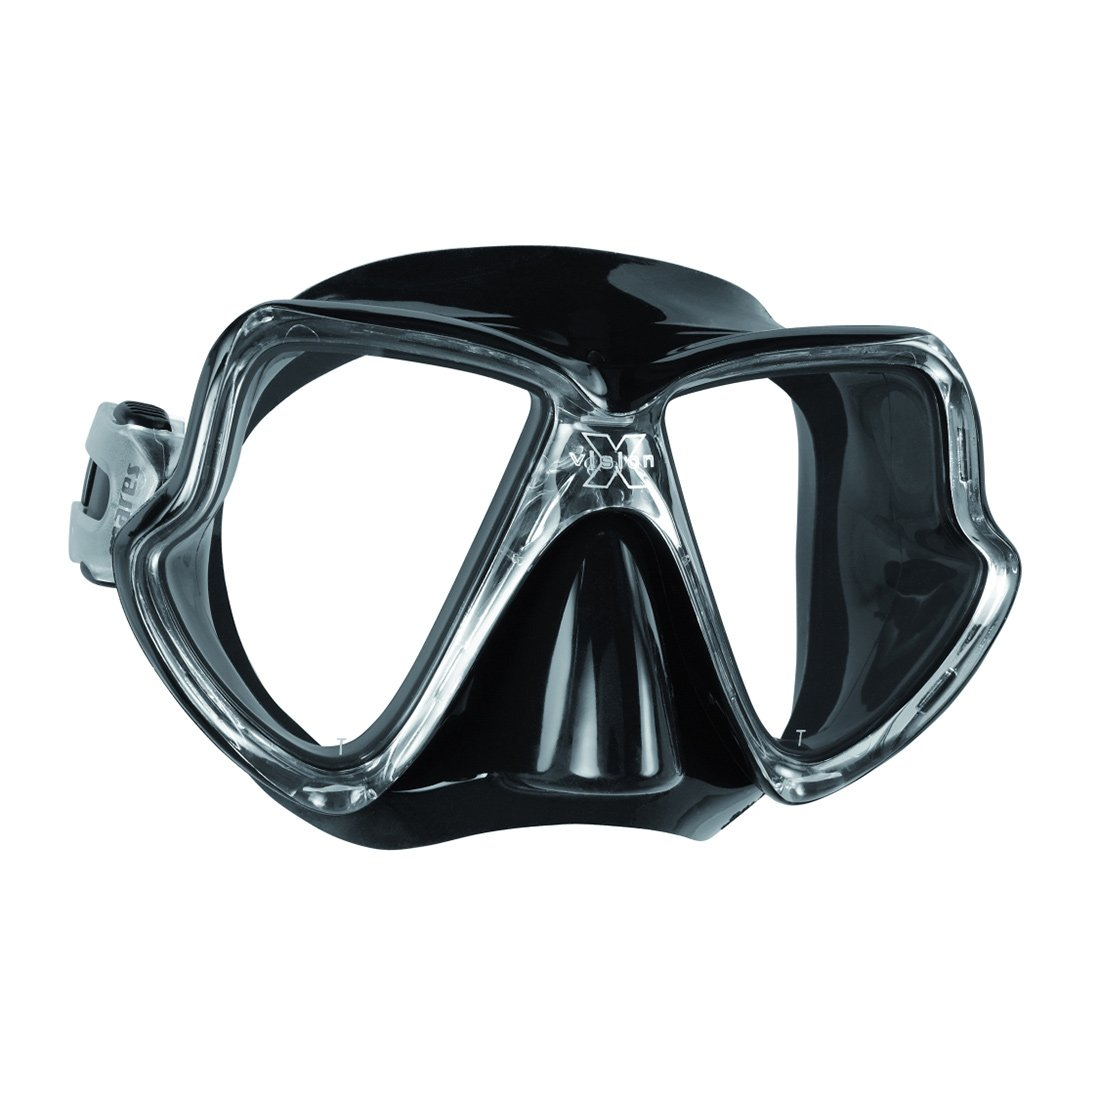 Pink Mares X-Vision Mid Mask for Scuba Diving and Snorkeling